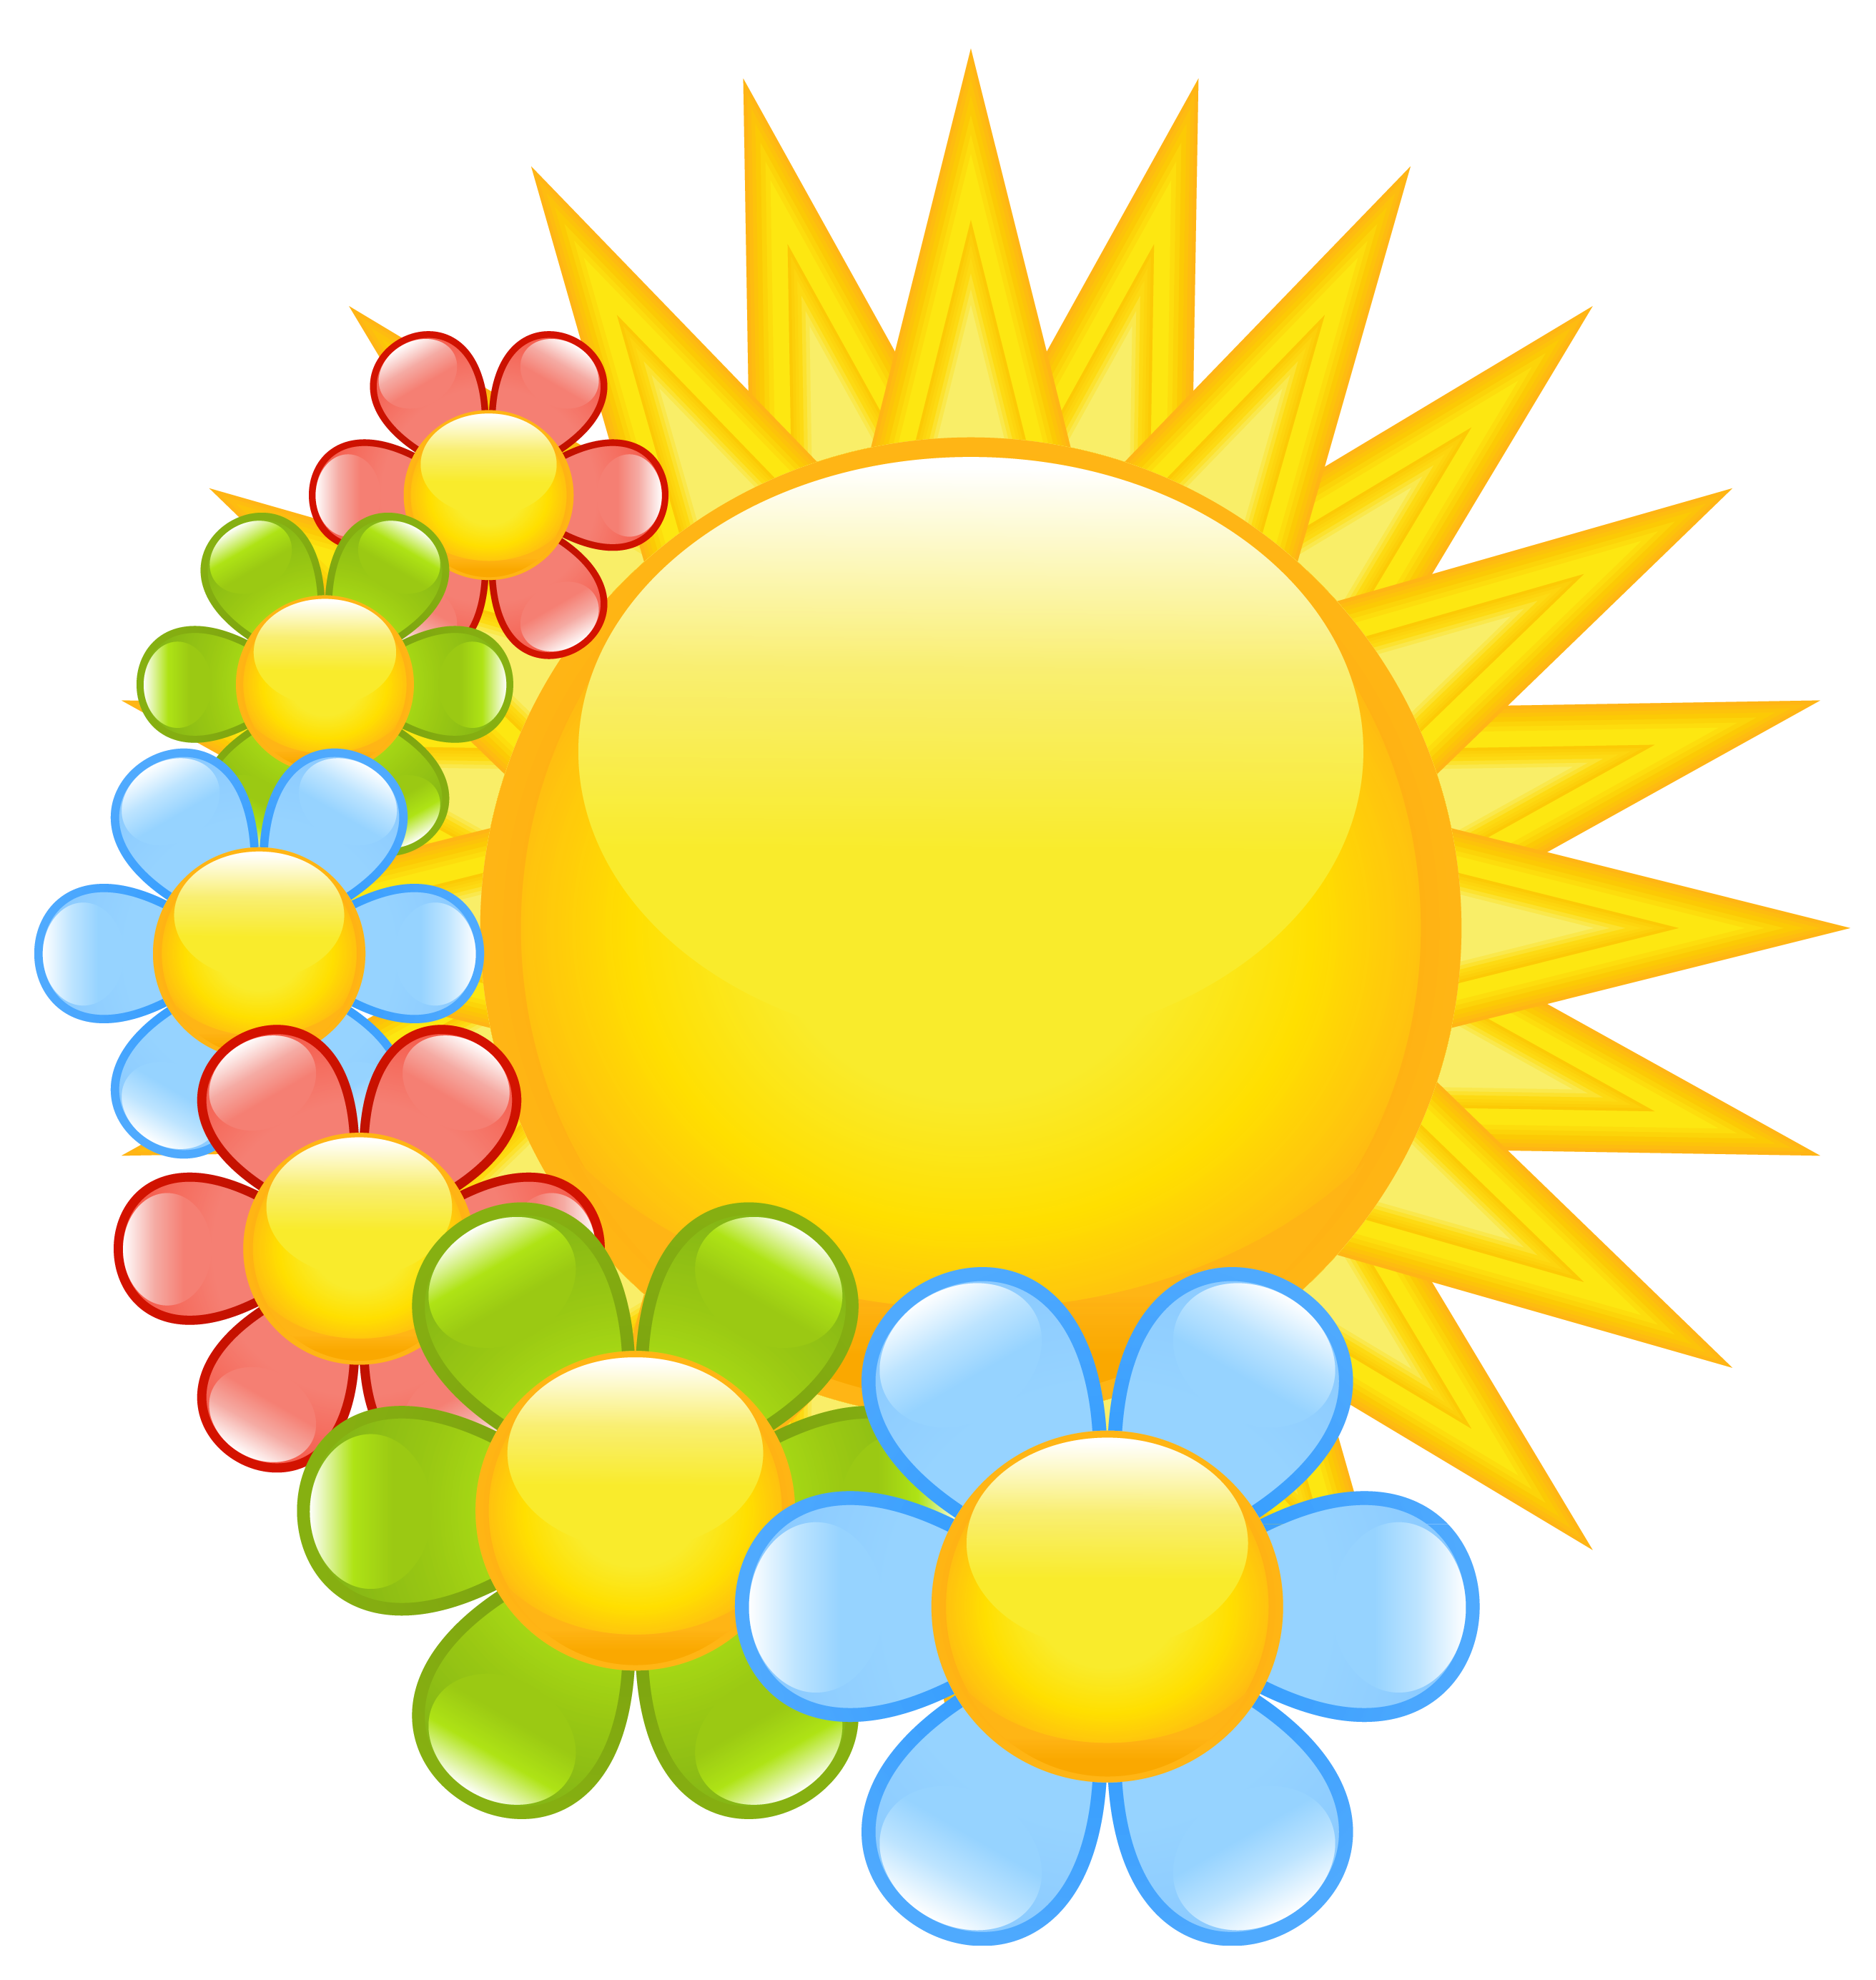 Smiling sun clipart royalty free free stock 28+ Collection of Pretty Sun Clipart | High quality, free cliparts ... free stock